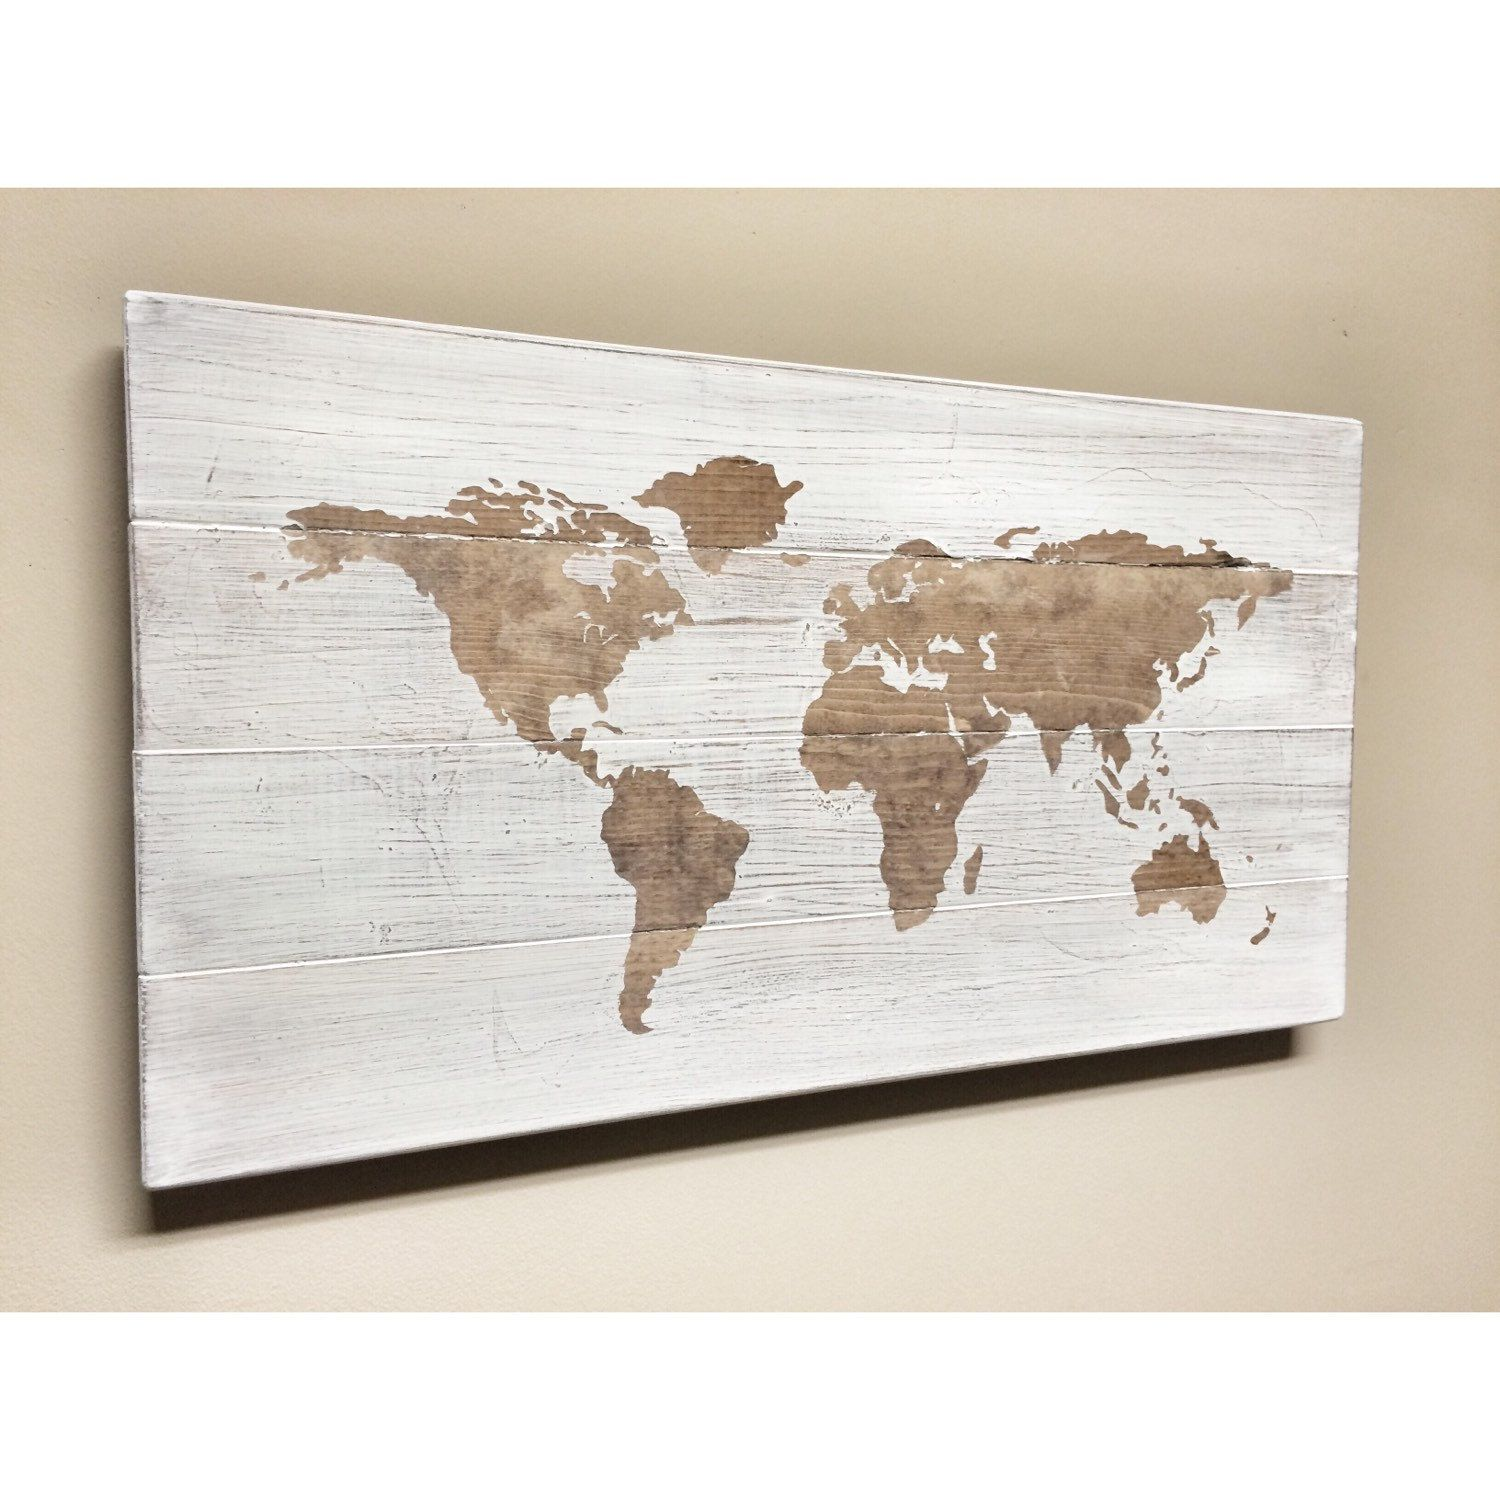 Rustic wood world map rustic decor farmhouse decor rustic nursery rustic wood world map rustic decor farmhouse decor rustic nursery decor wall gumiabroncs Gallery